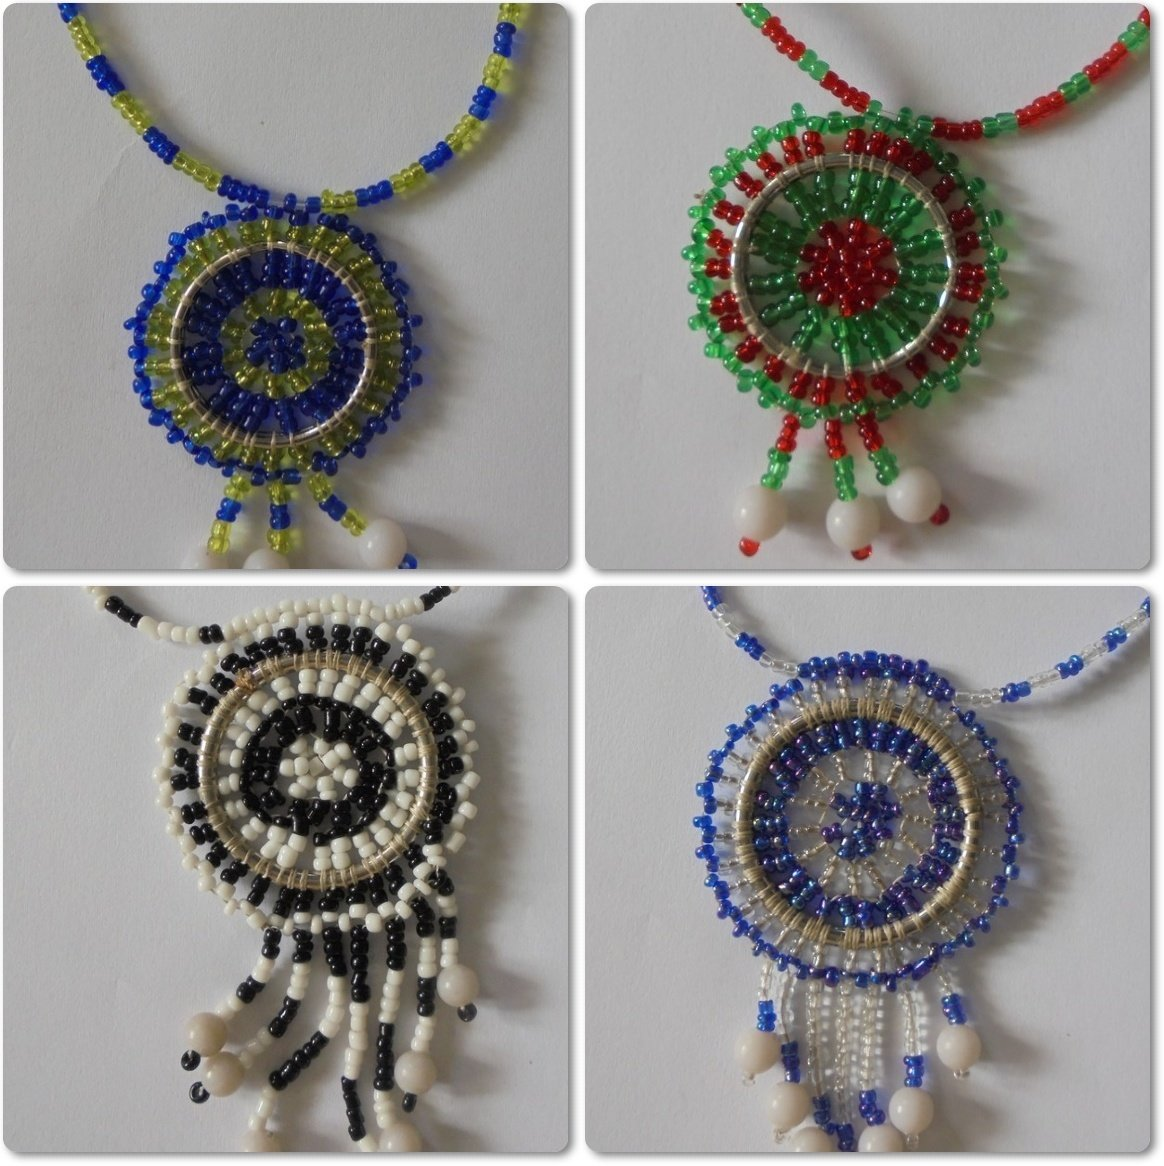 4 pieces Masai beads necklaces-MBN006